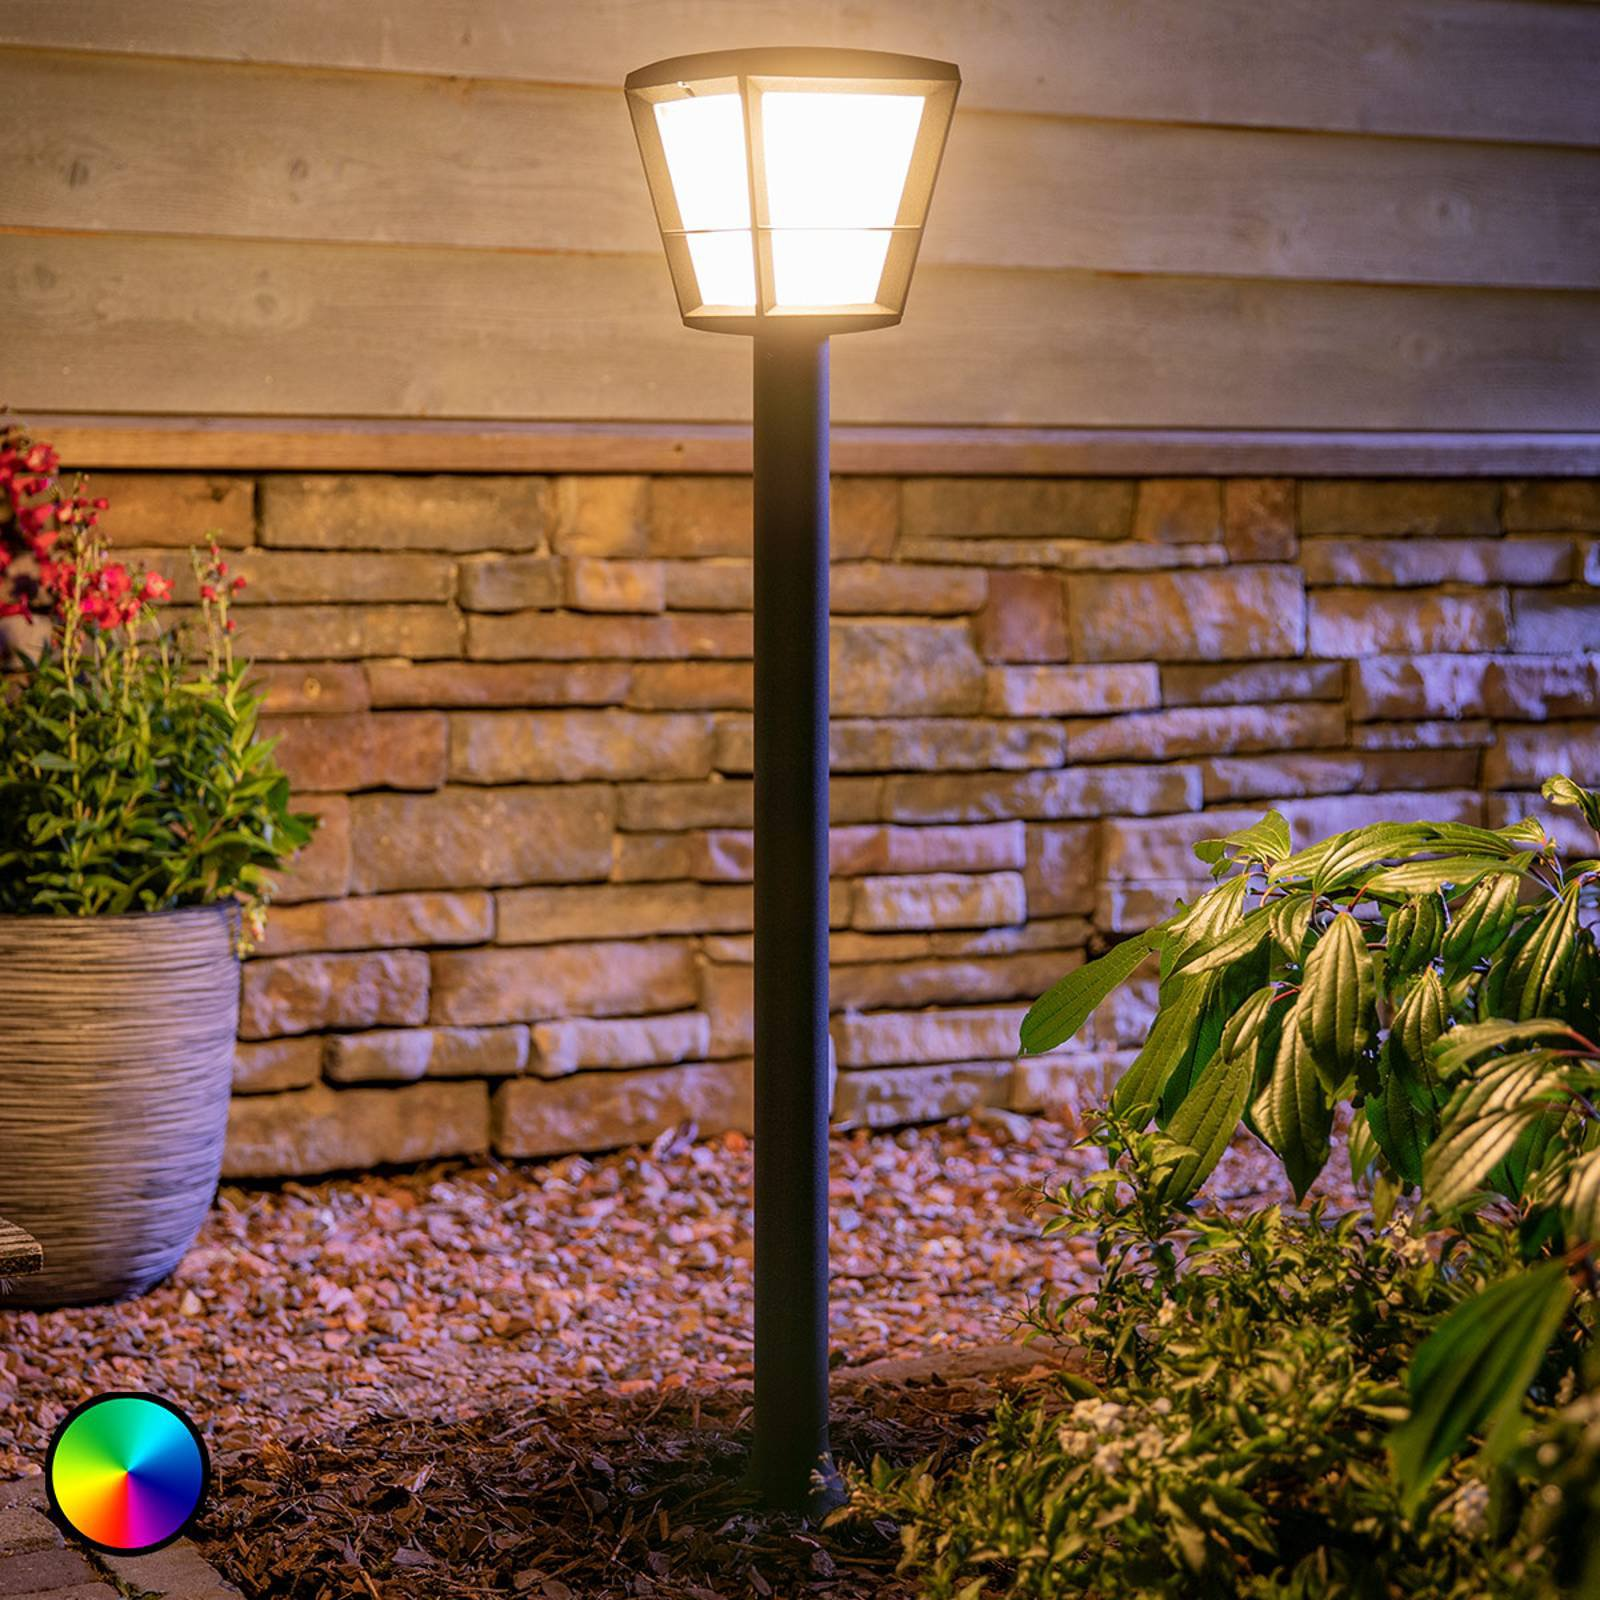 Philips Hue White+Color Econic LED-veilampe